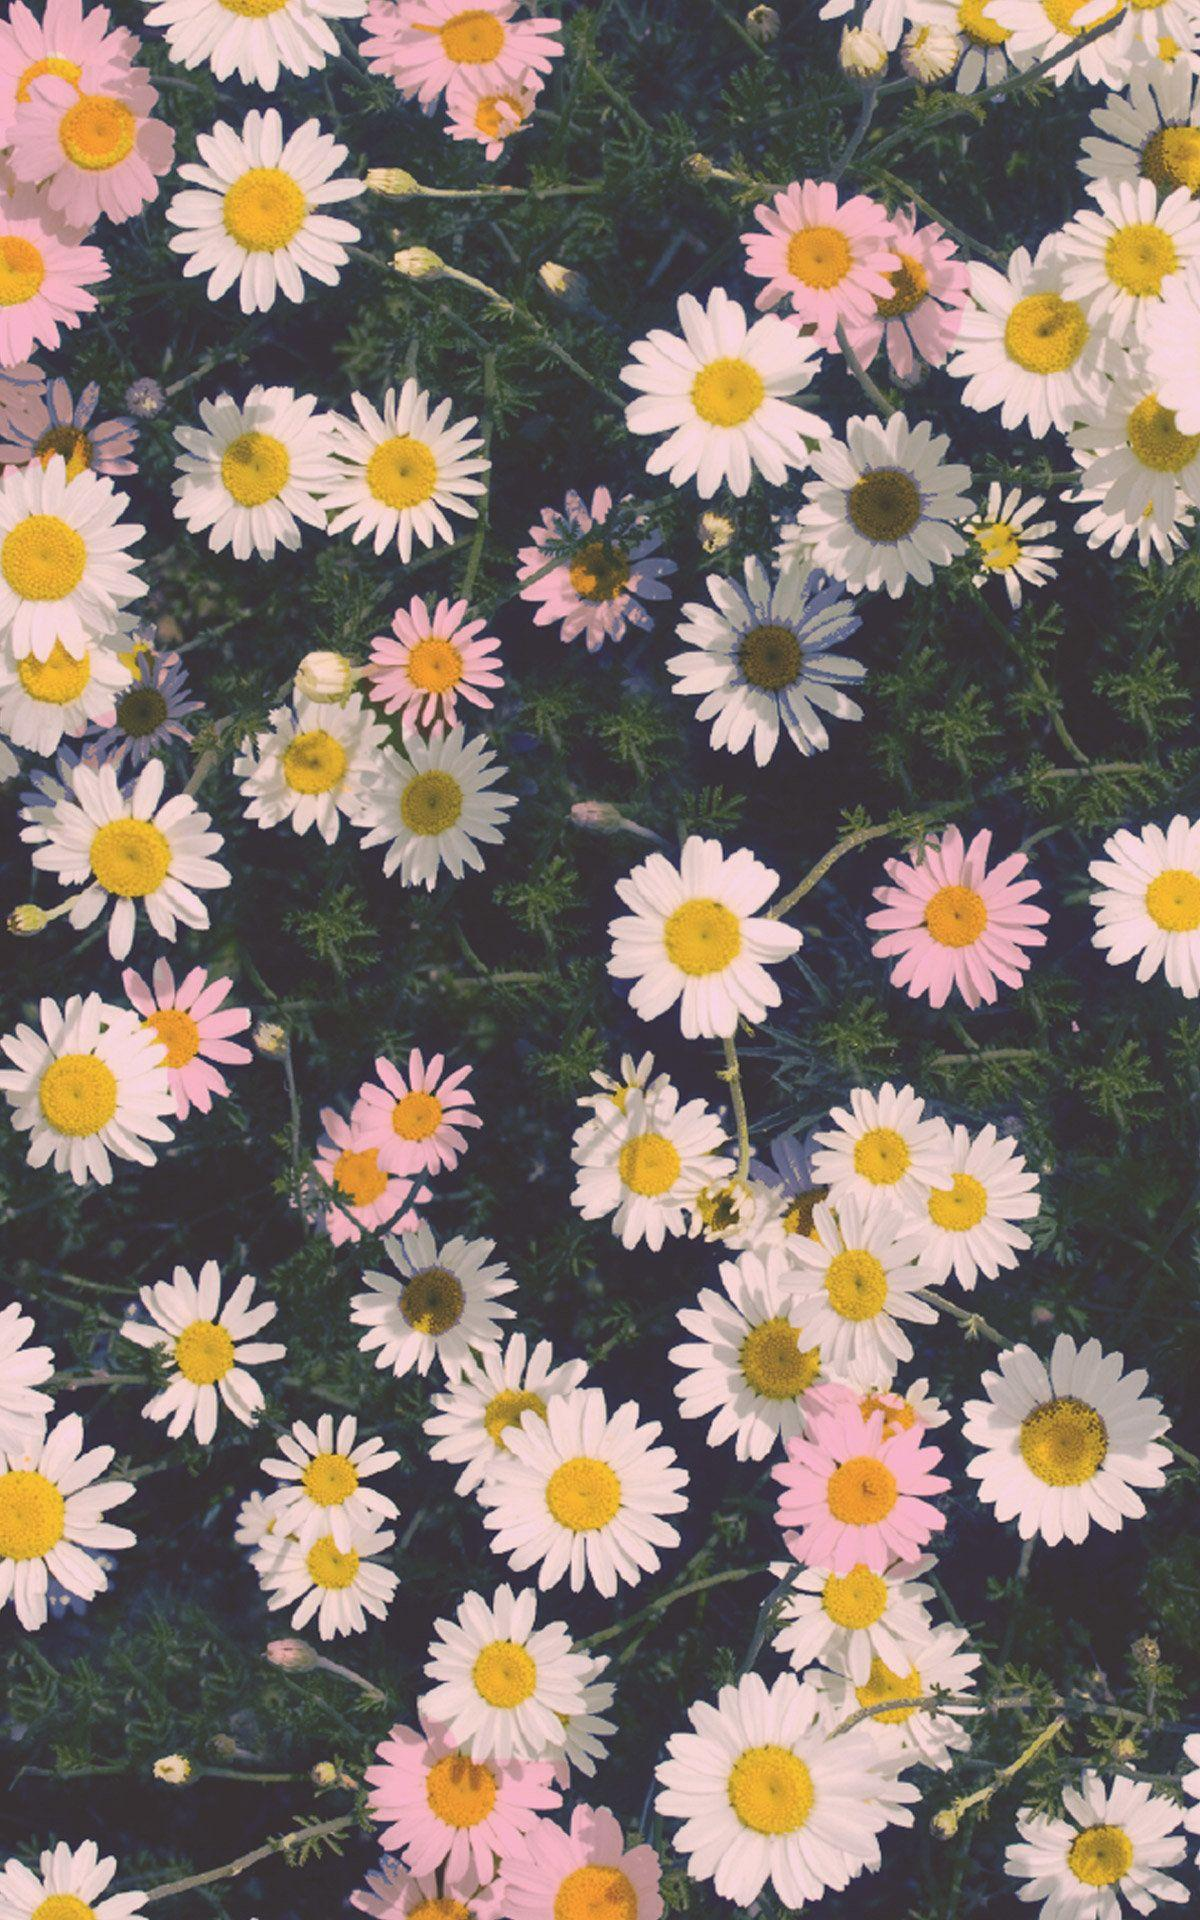 4k Flower Iphone X Wallpapers Wallpaper Cave